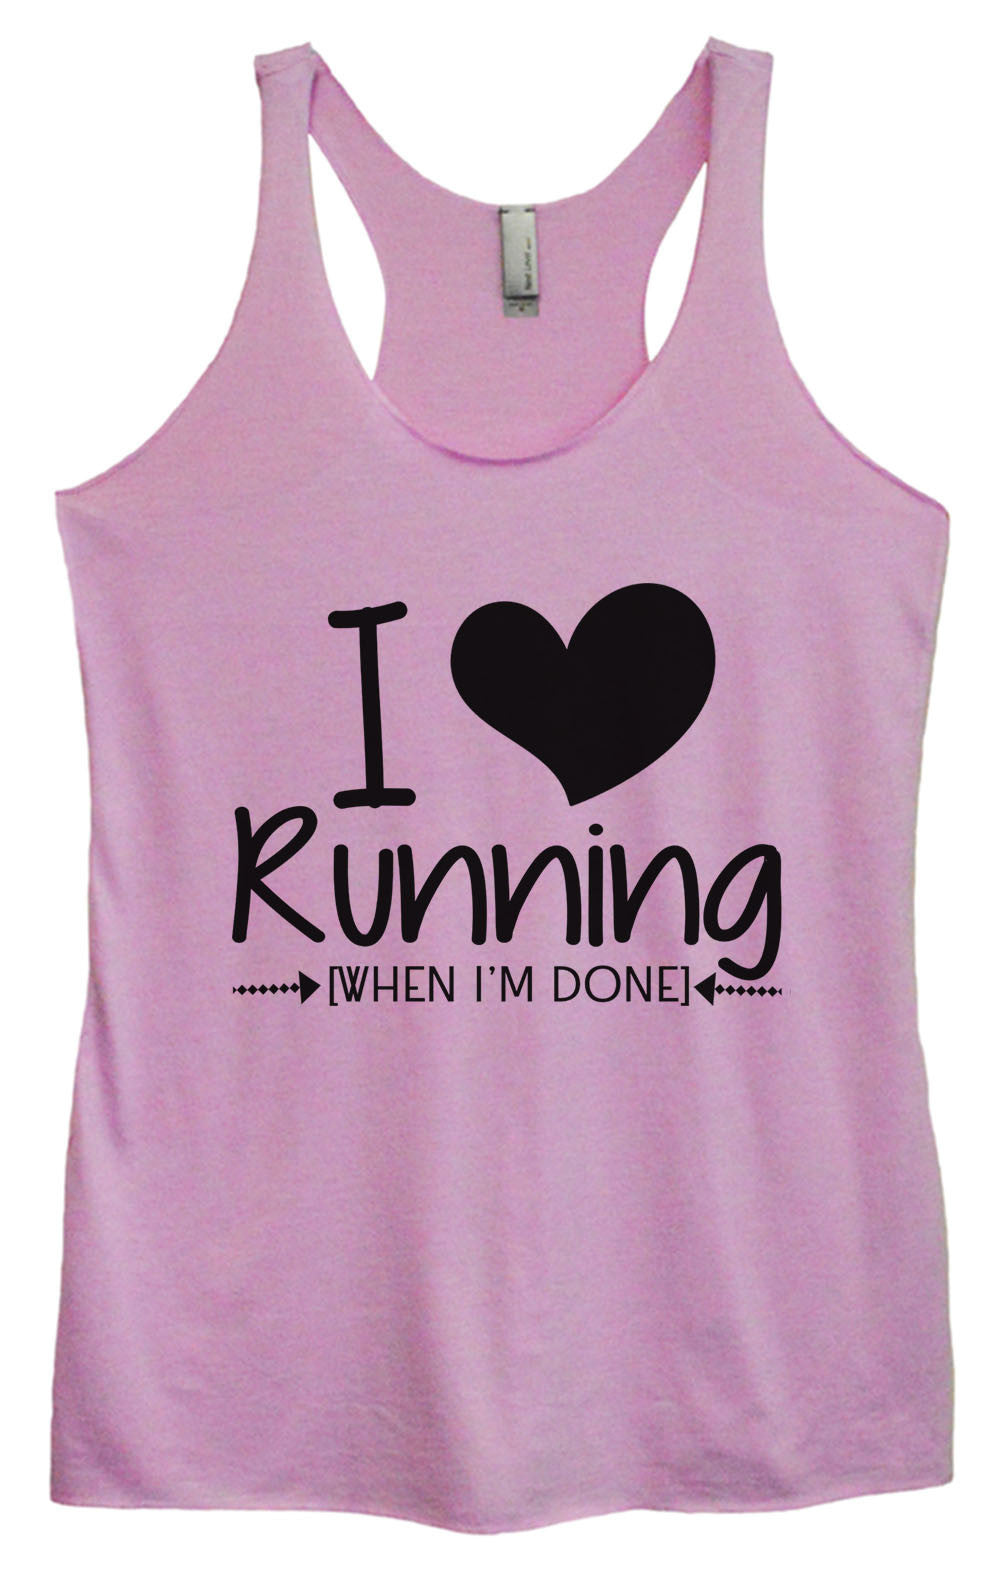 Womens Fashion Triblend Tank Top - I Love Running [When I'm Done] - Tri-1013 - Funny Shirts Tank Tops Burnouts and Triblends  - 4